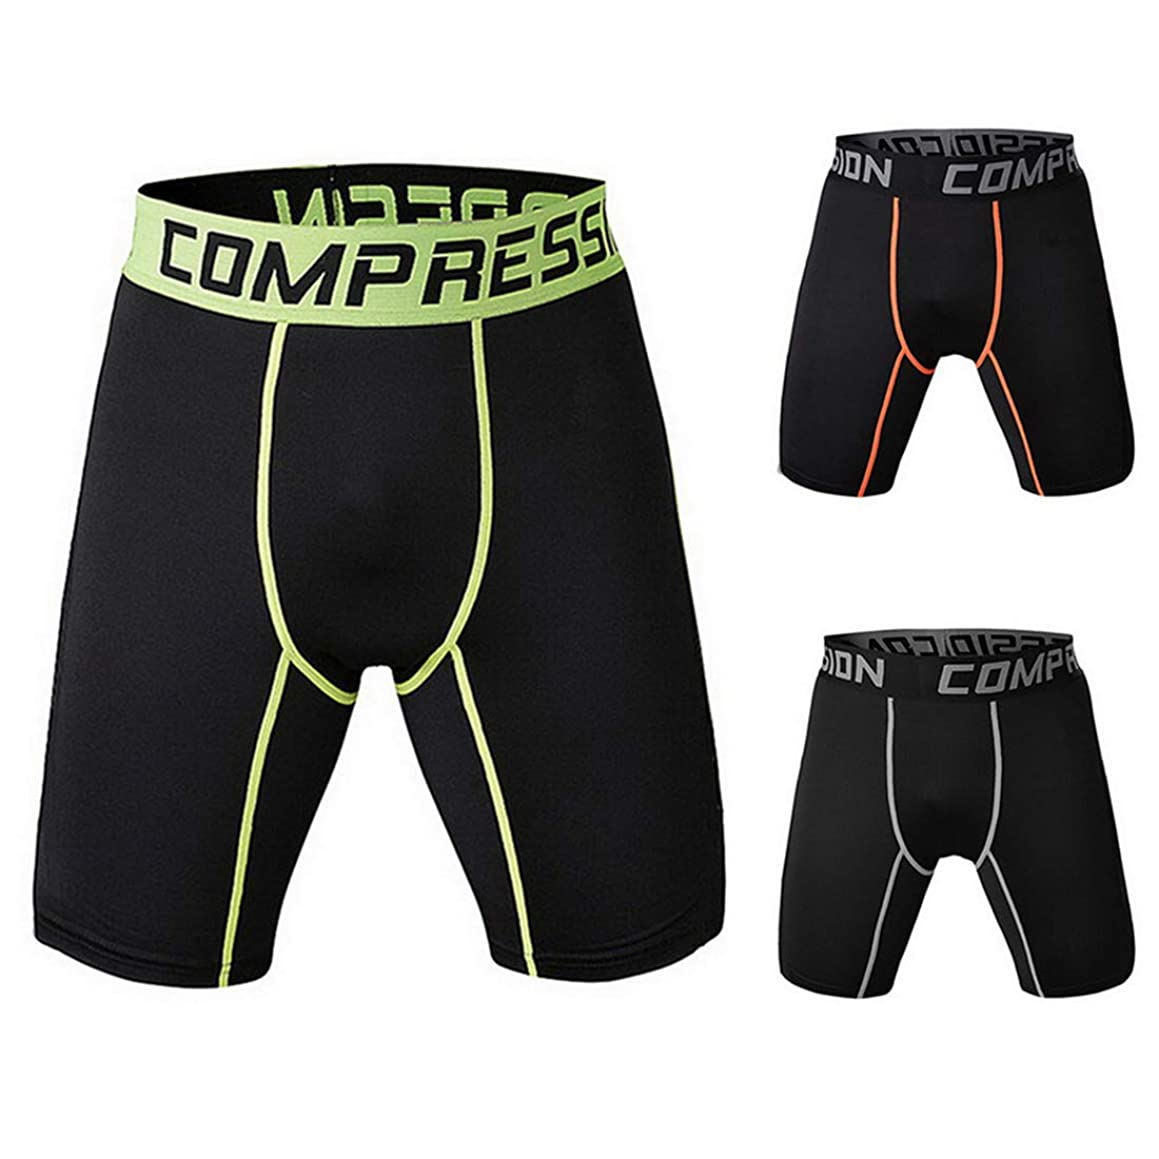 Litthing Gym Shorts Fitness Short Tights Skinny Pants Dry Sportswear for Mens Outside